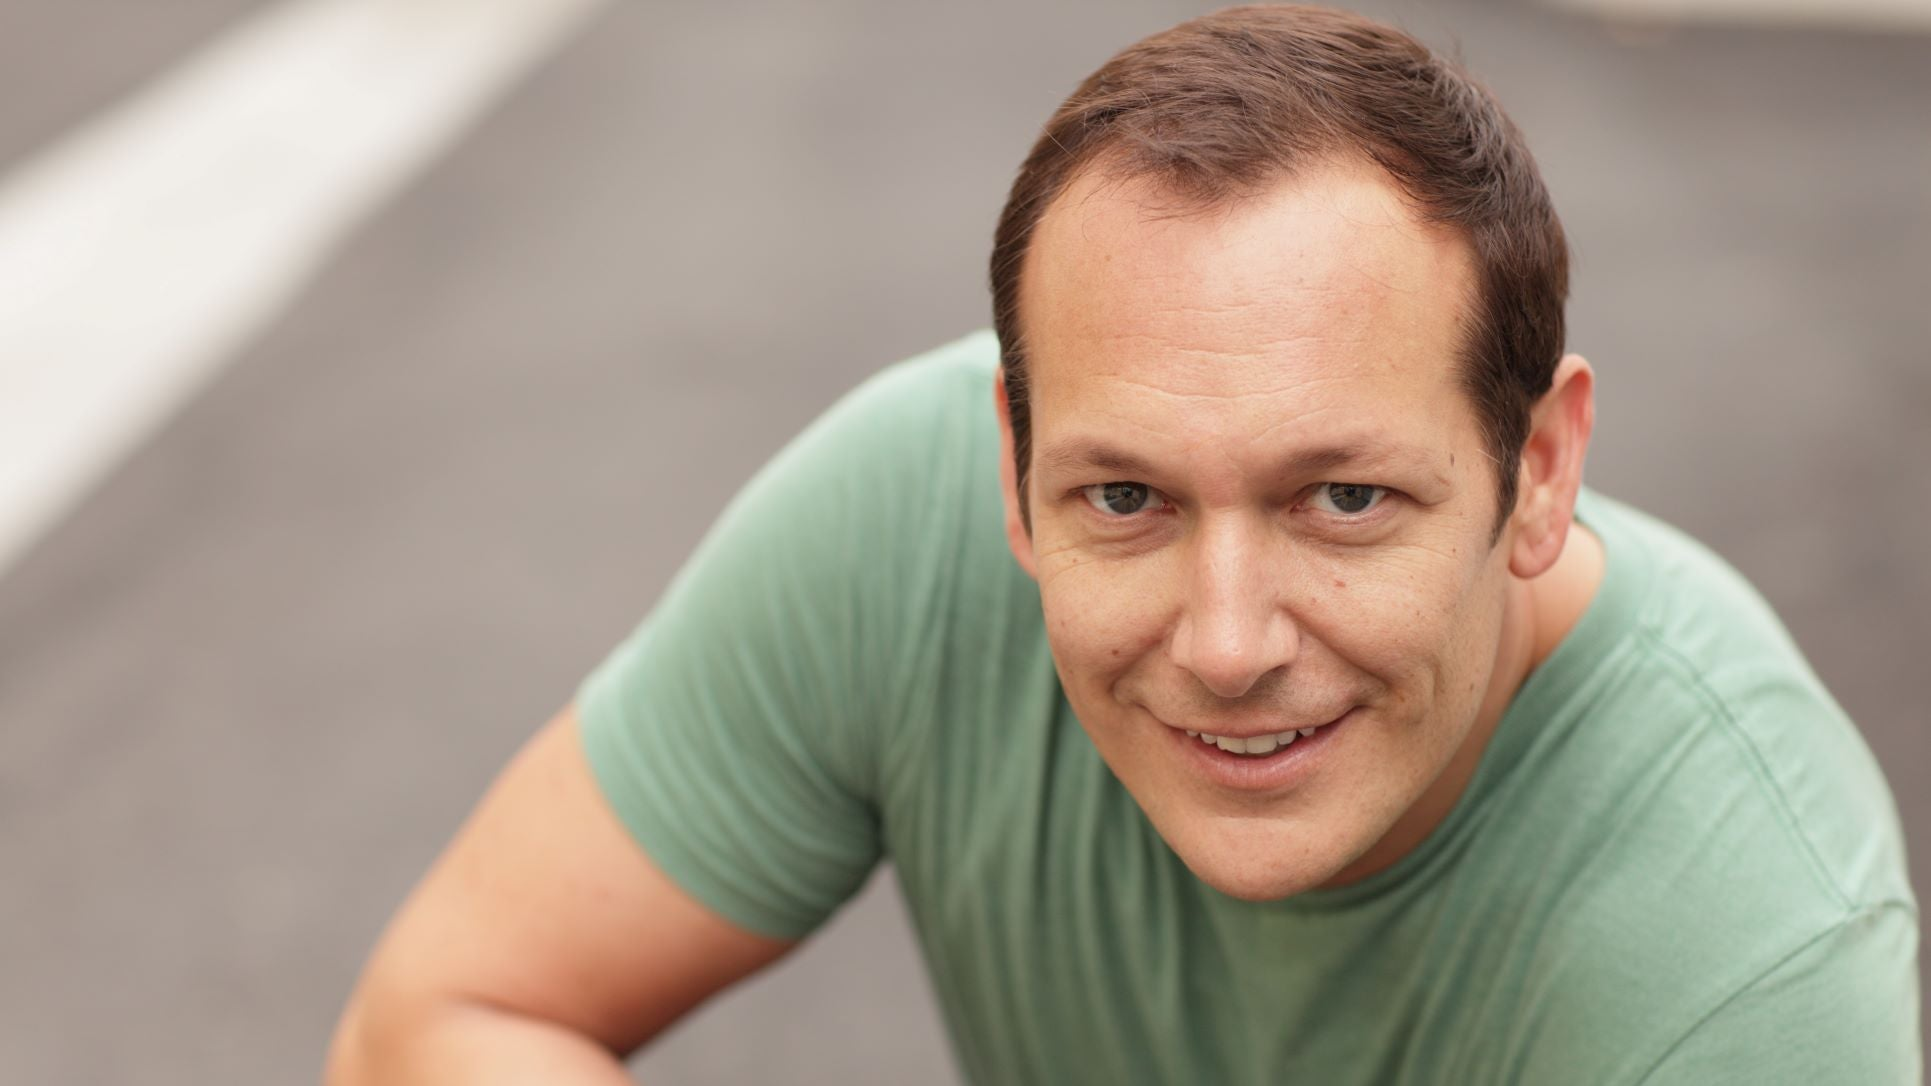 a guy smiling with receding hairline